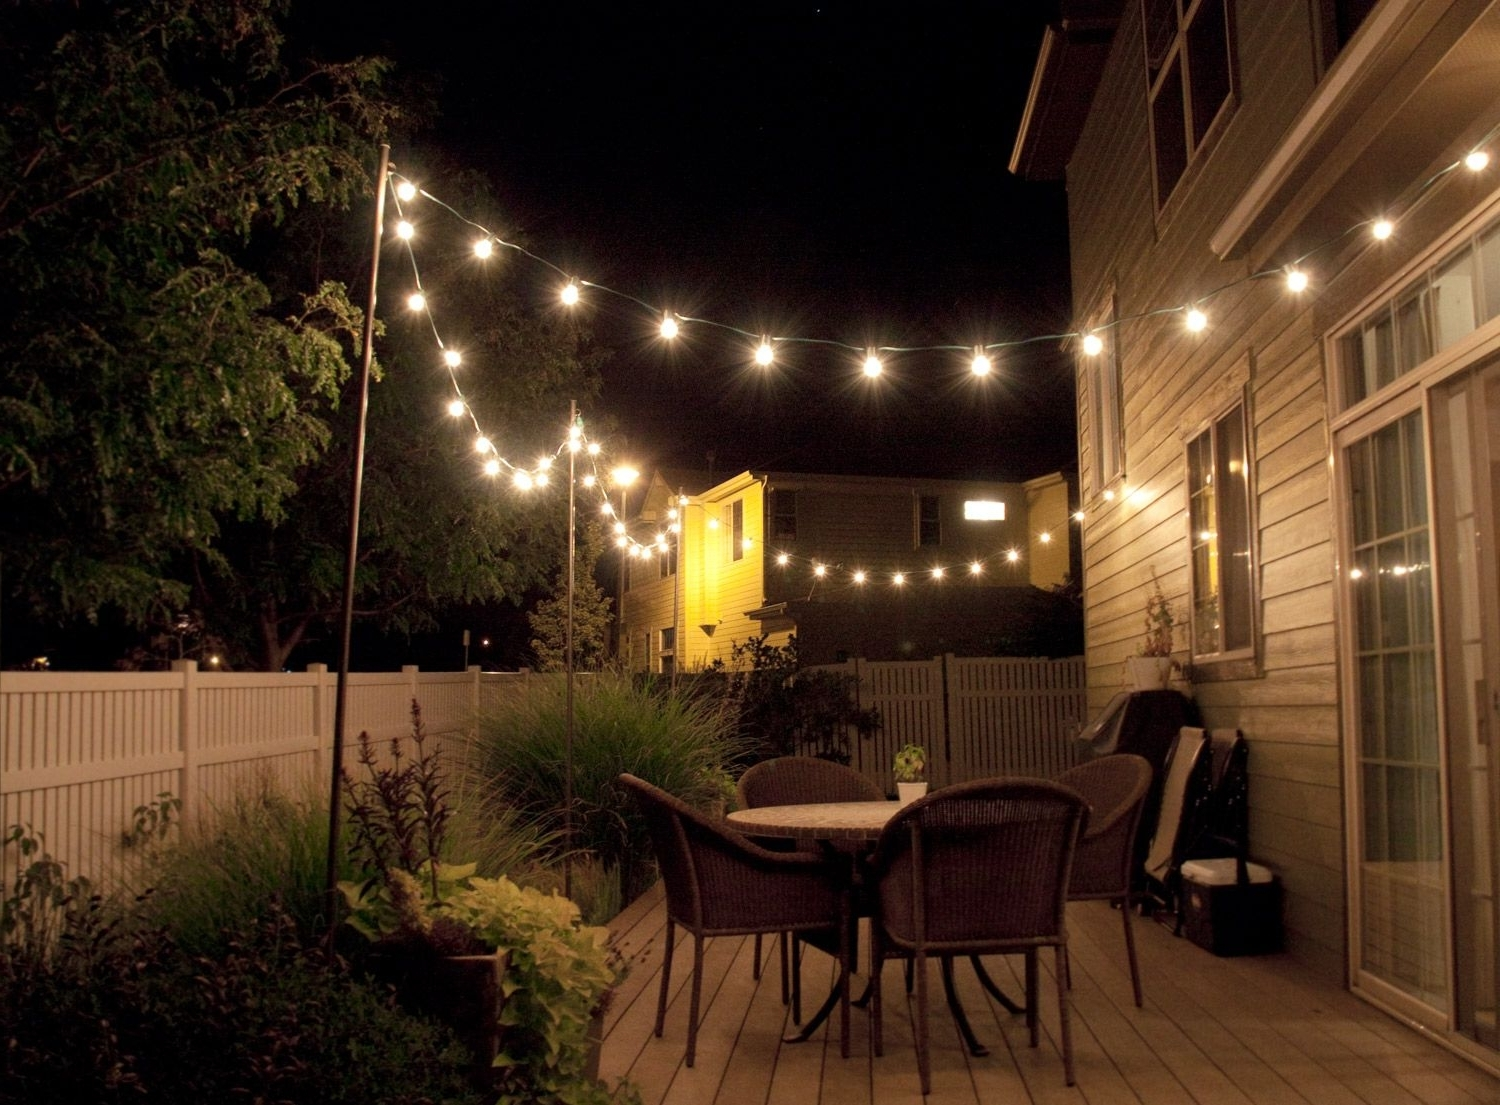 Latest How To Make Inexpensive Poles To Hang String Lights On – Café Style For Outdoor Hanging Lights On String (View 8 of 20)